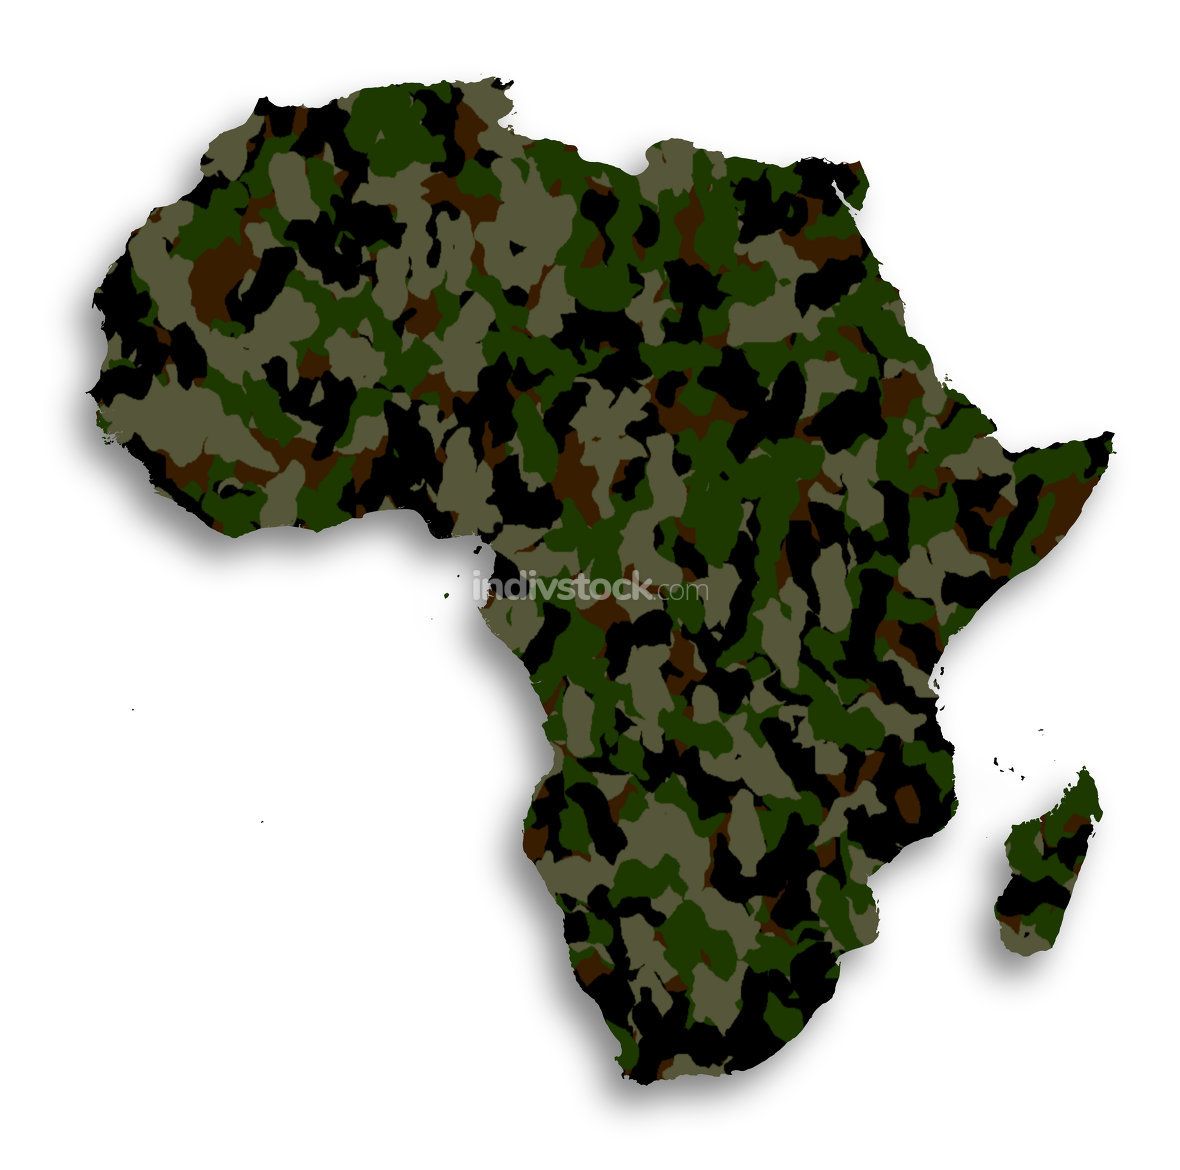 Map of Africa filled with camouflage pattern